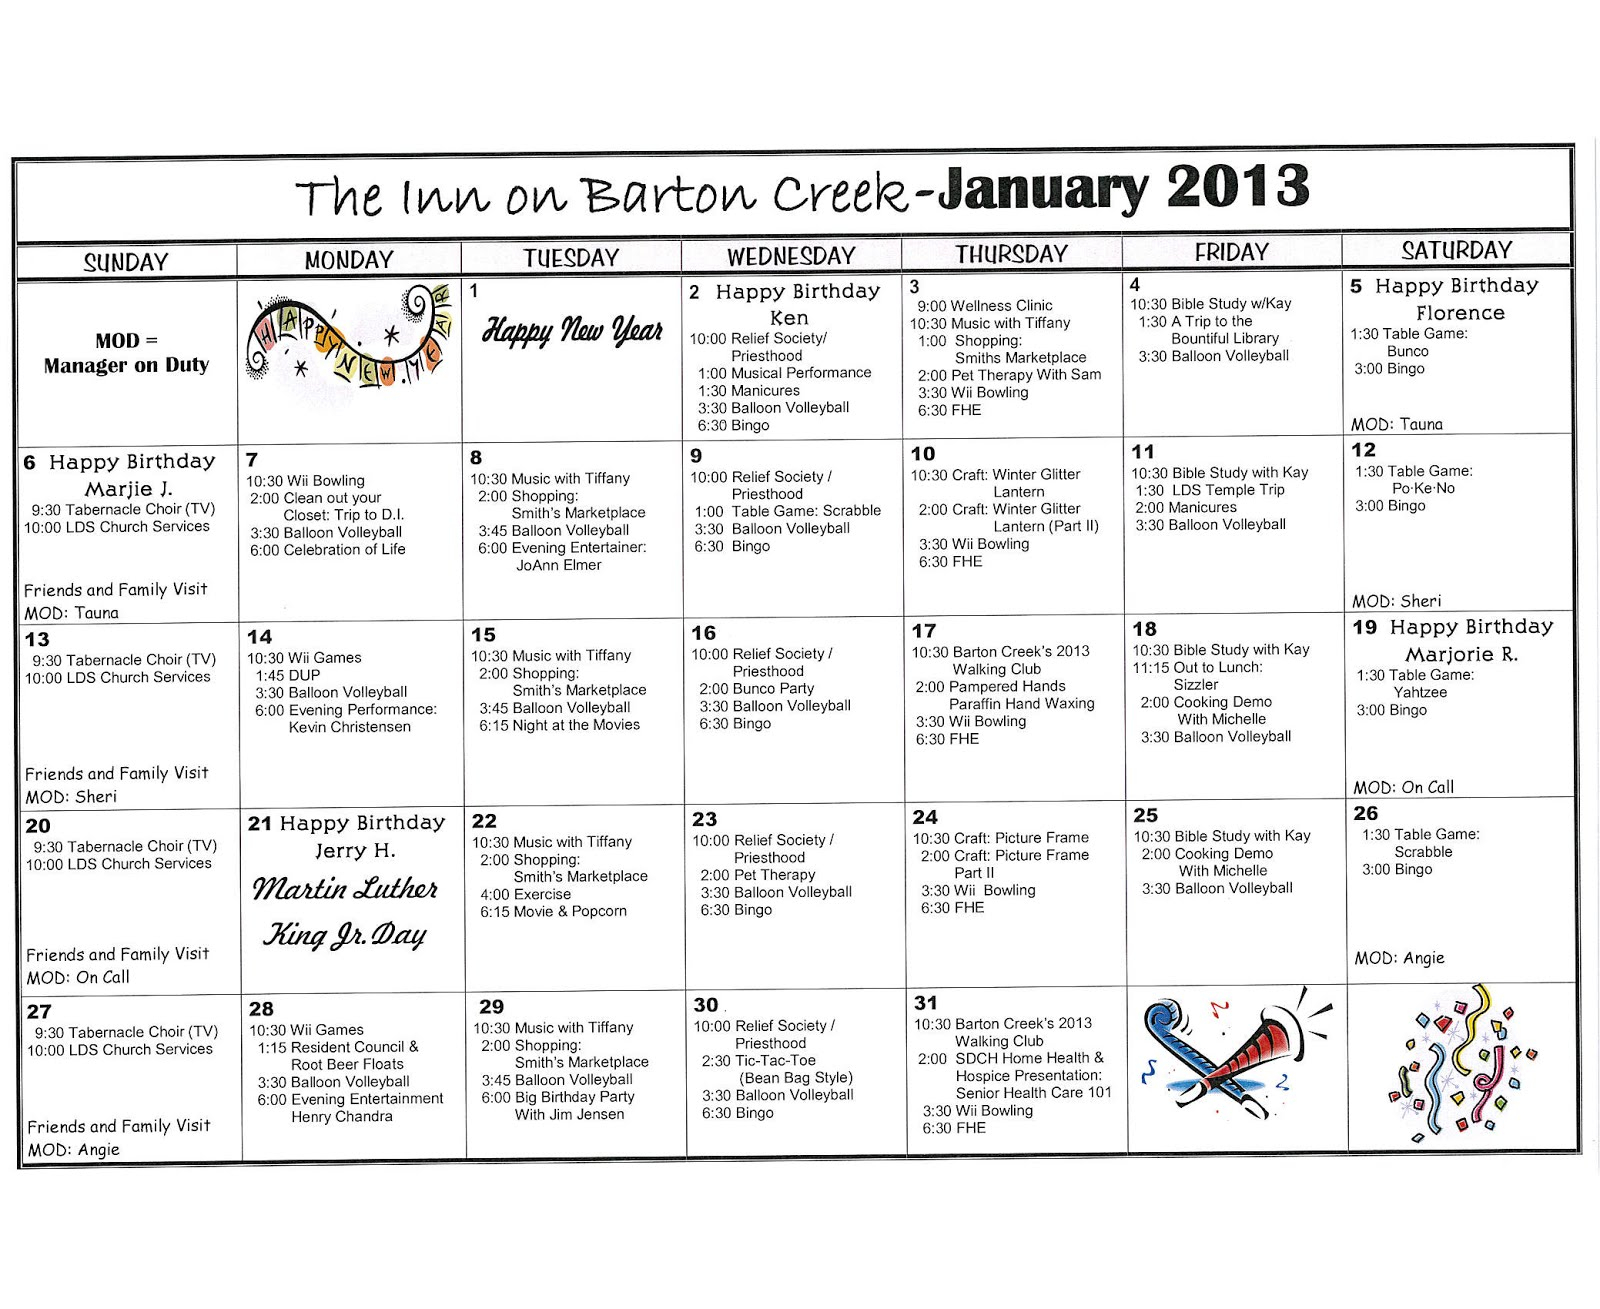 Barton Creek Assisted Living: January 2013 Activities Calendar Pertaining To Assisted Living Activities Calendar Ideas